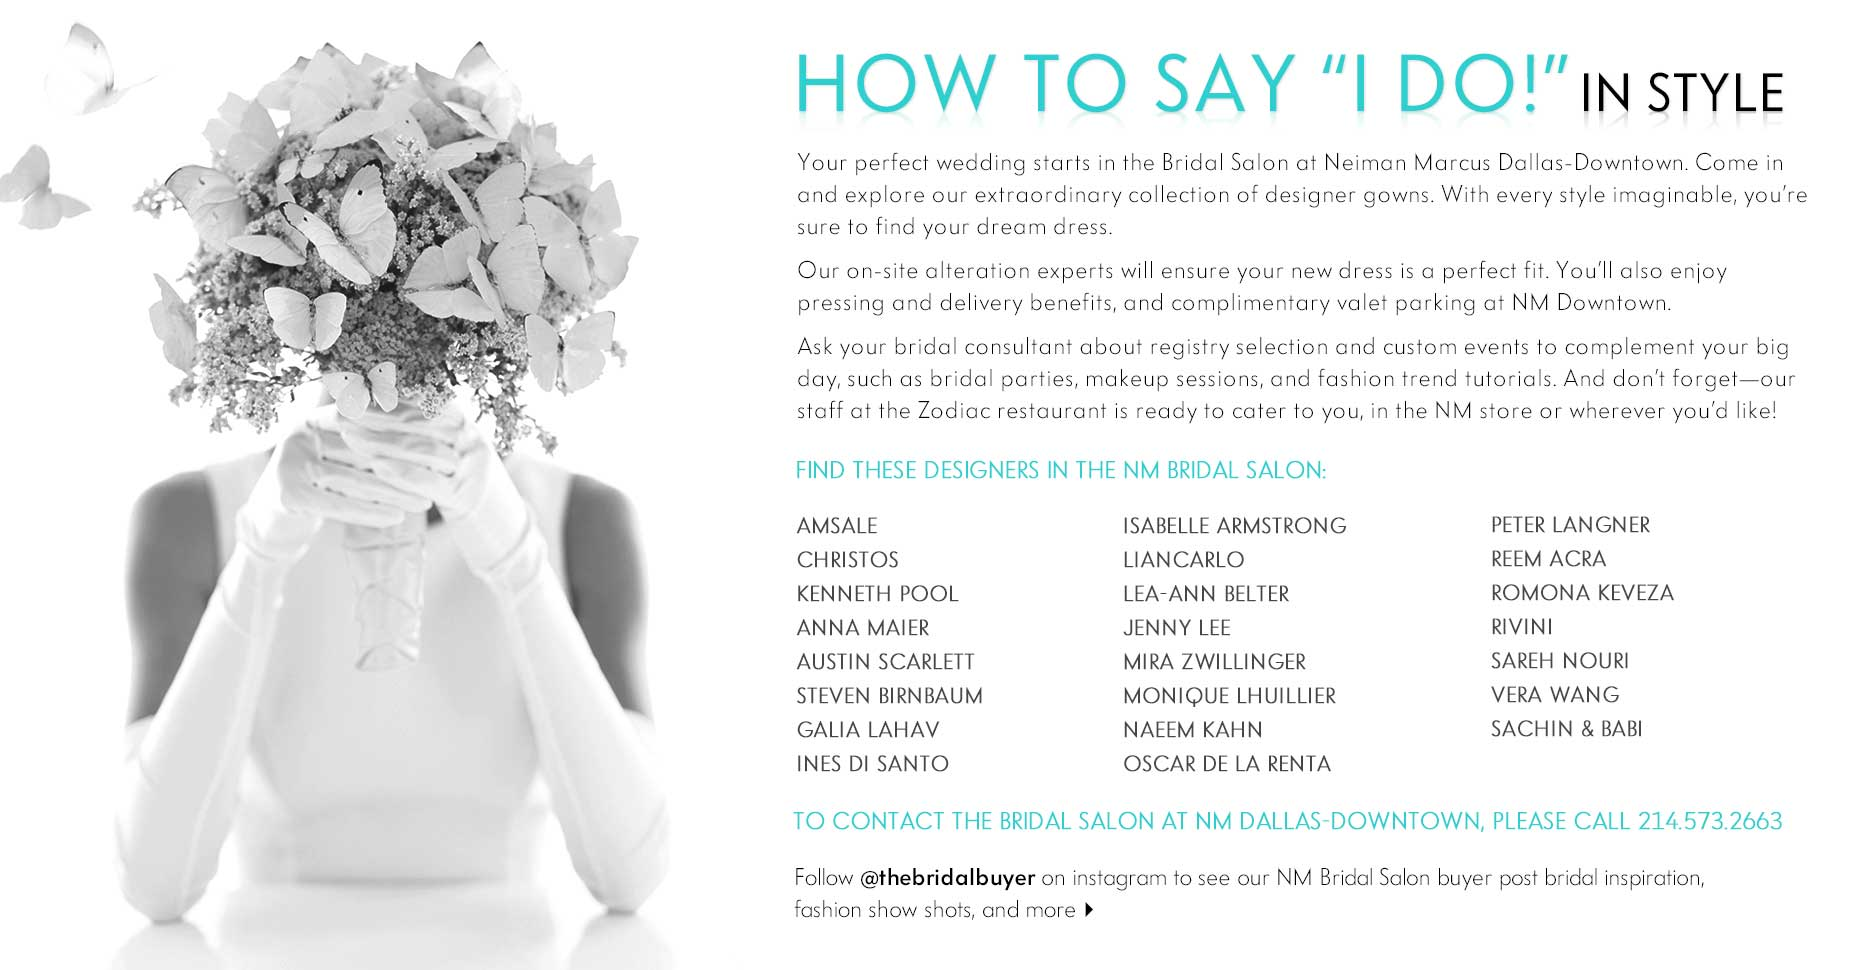 How to say 'I do' in style